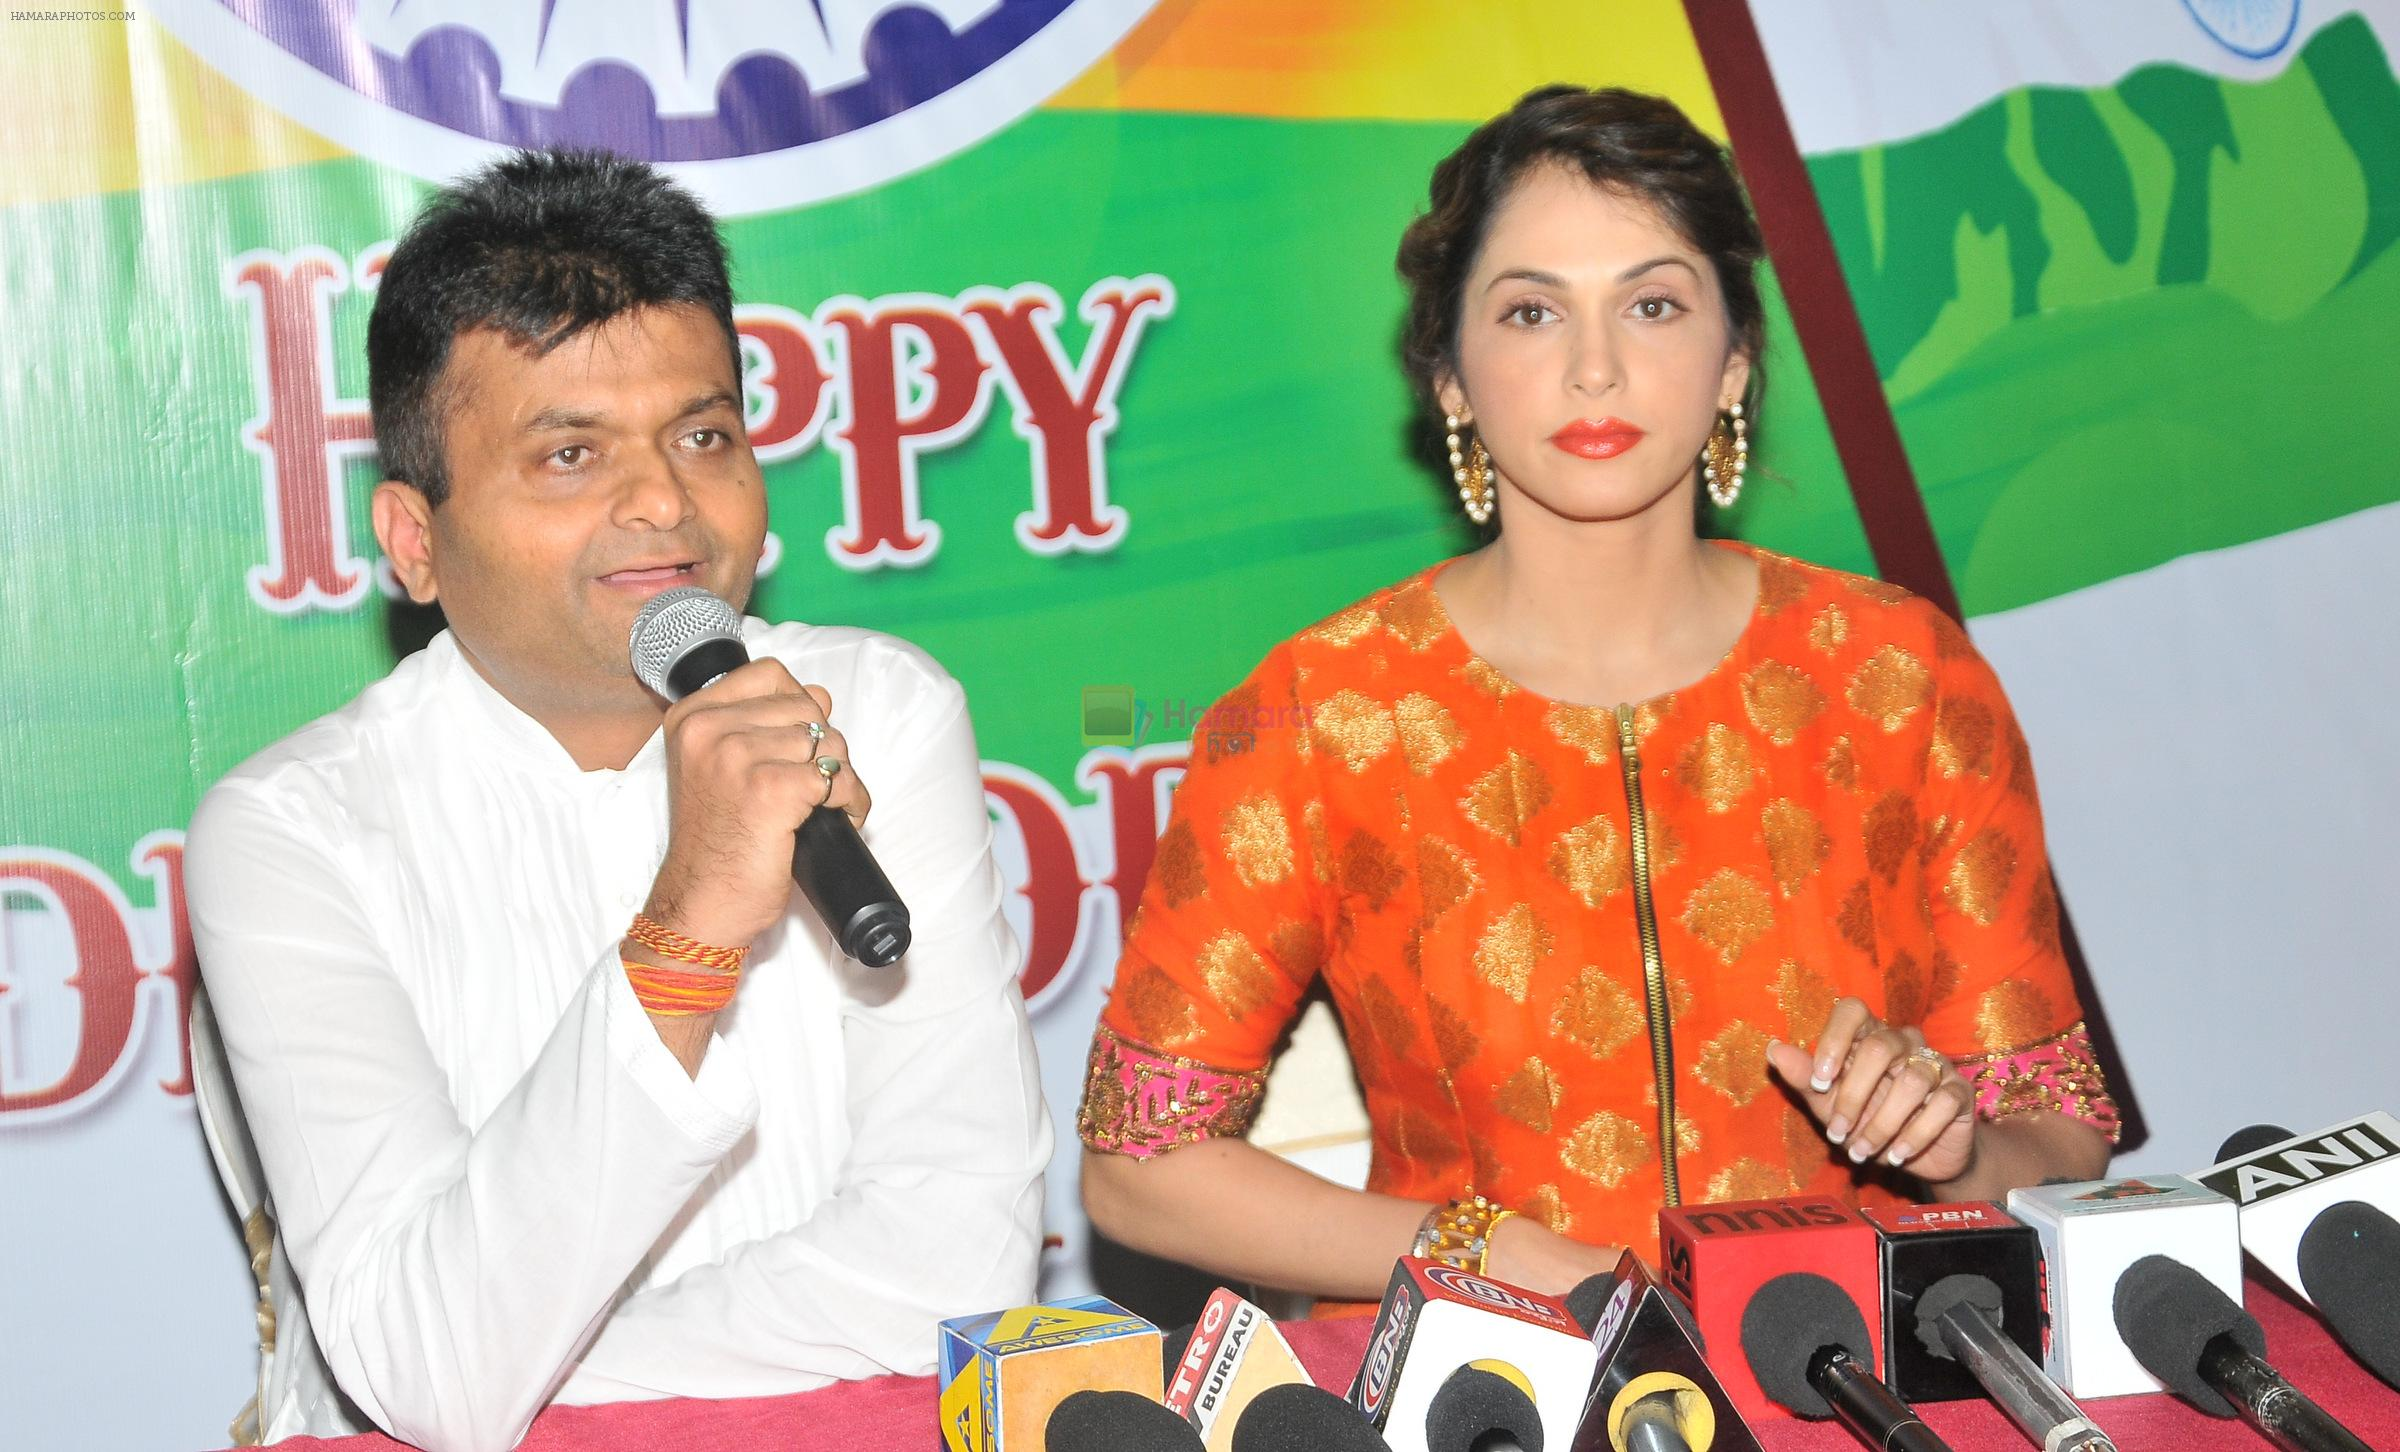 Aneel Murarka with Isha Koppikar at the press meet of short film Aur Dekho about Swachh Bharat on 15th Aug 2016